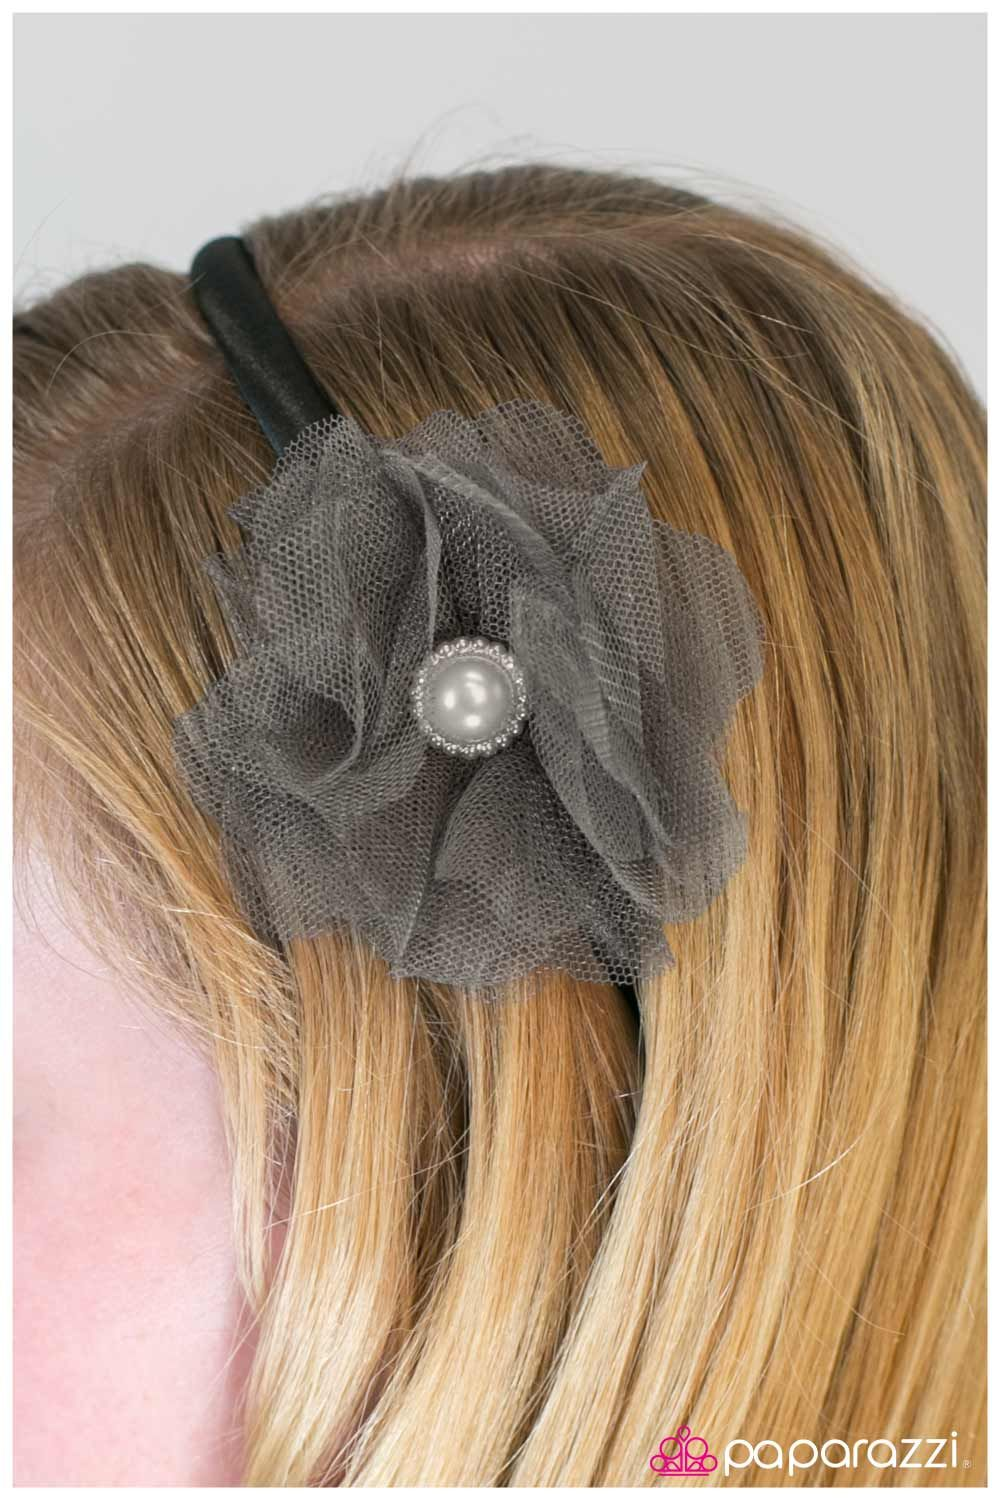 Black bow hair accessories - Tulle Ing Around 5 Hair Accessories Headbands And Jewelry Silver And